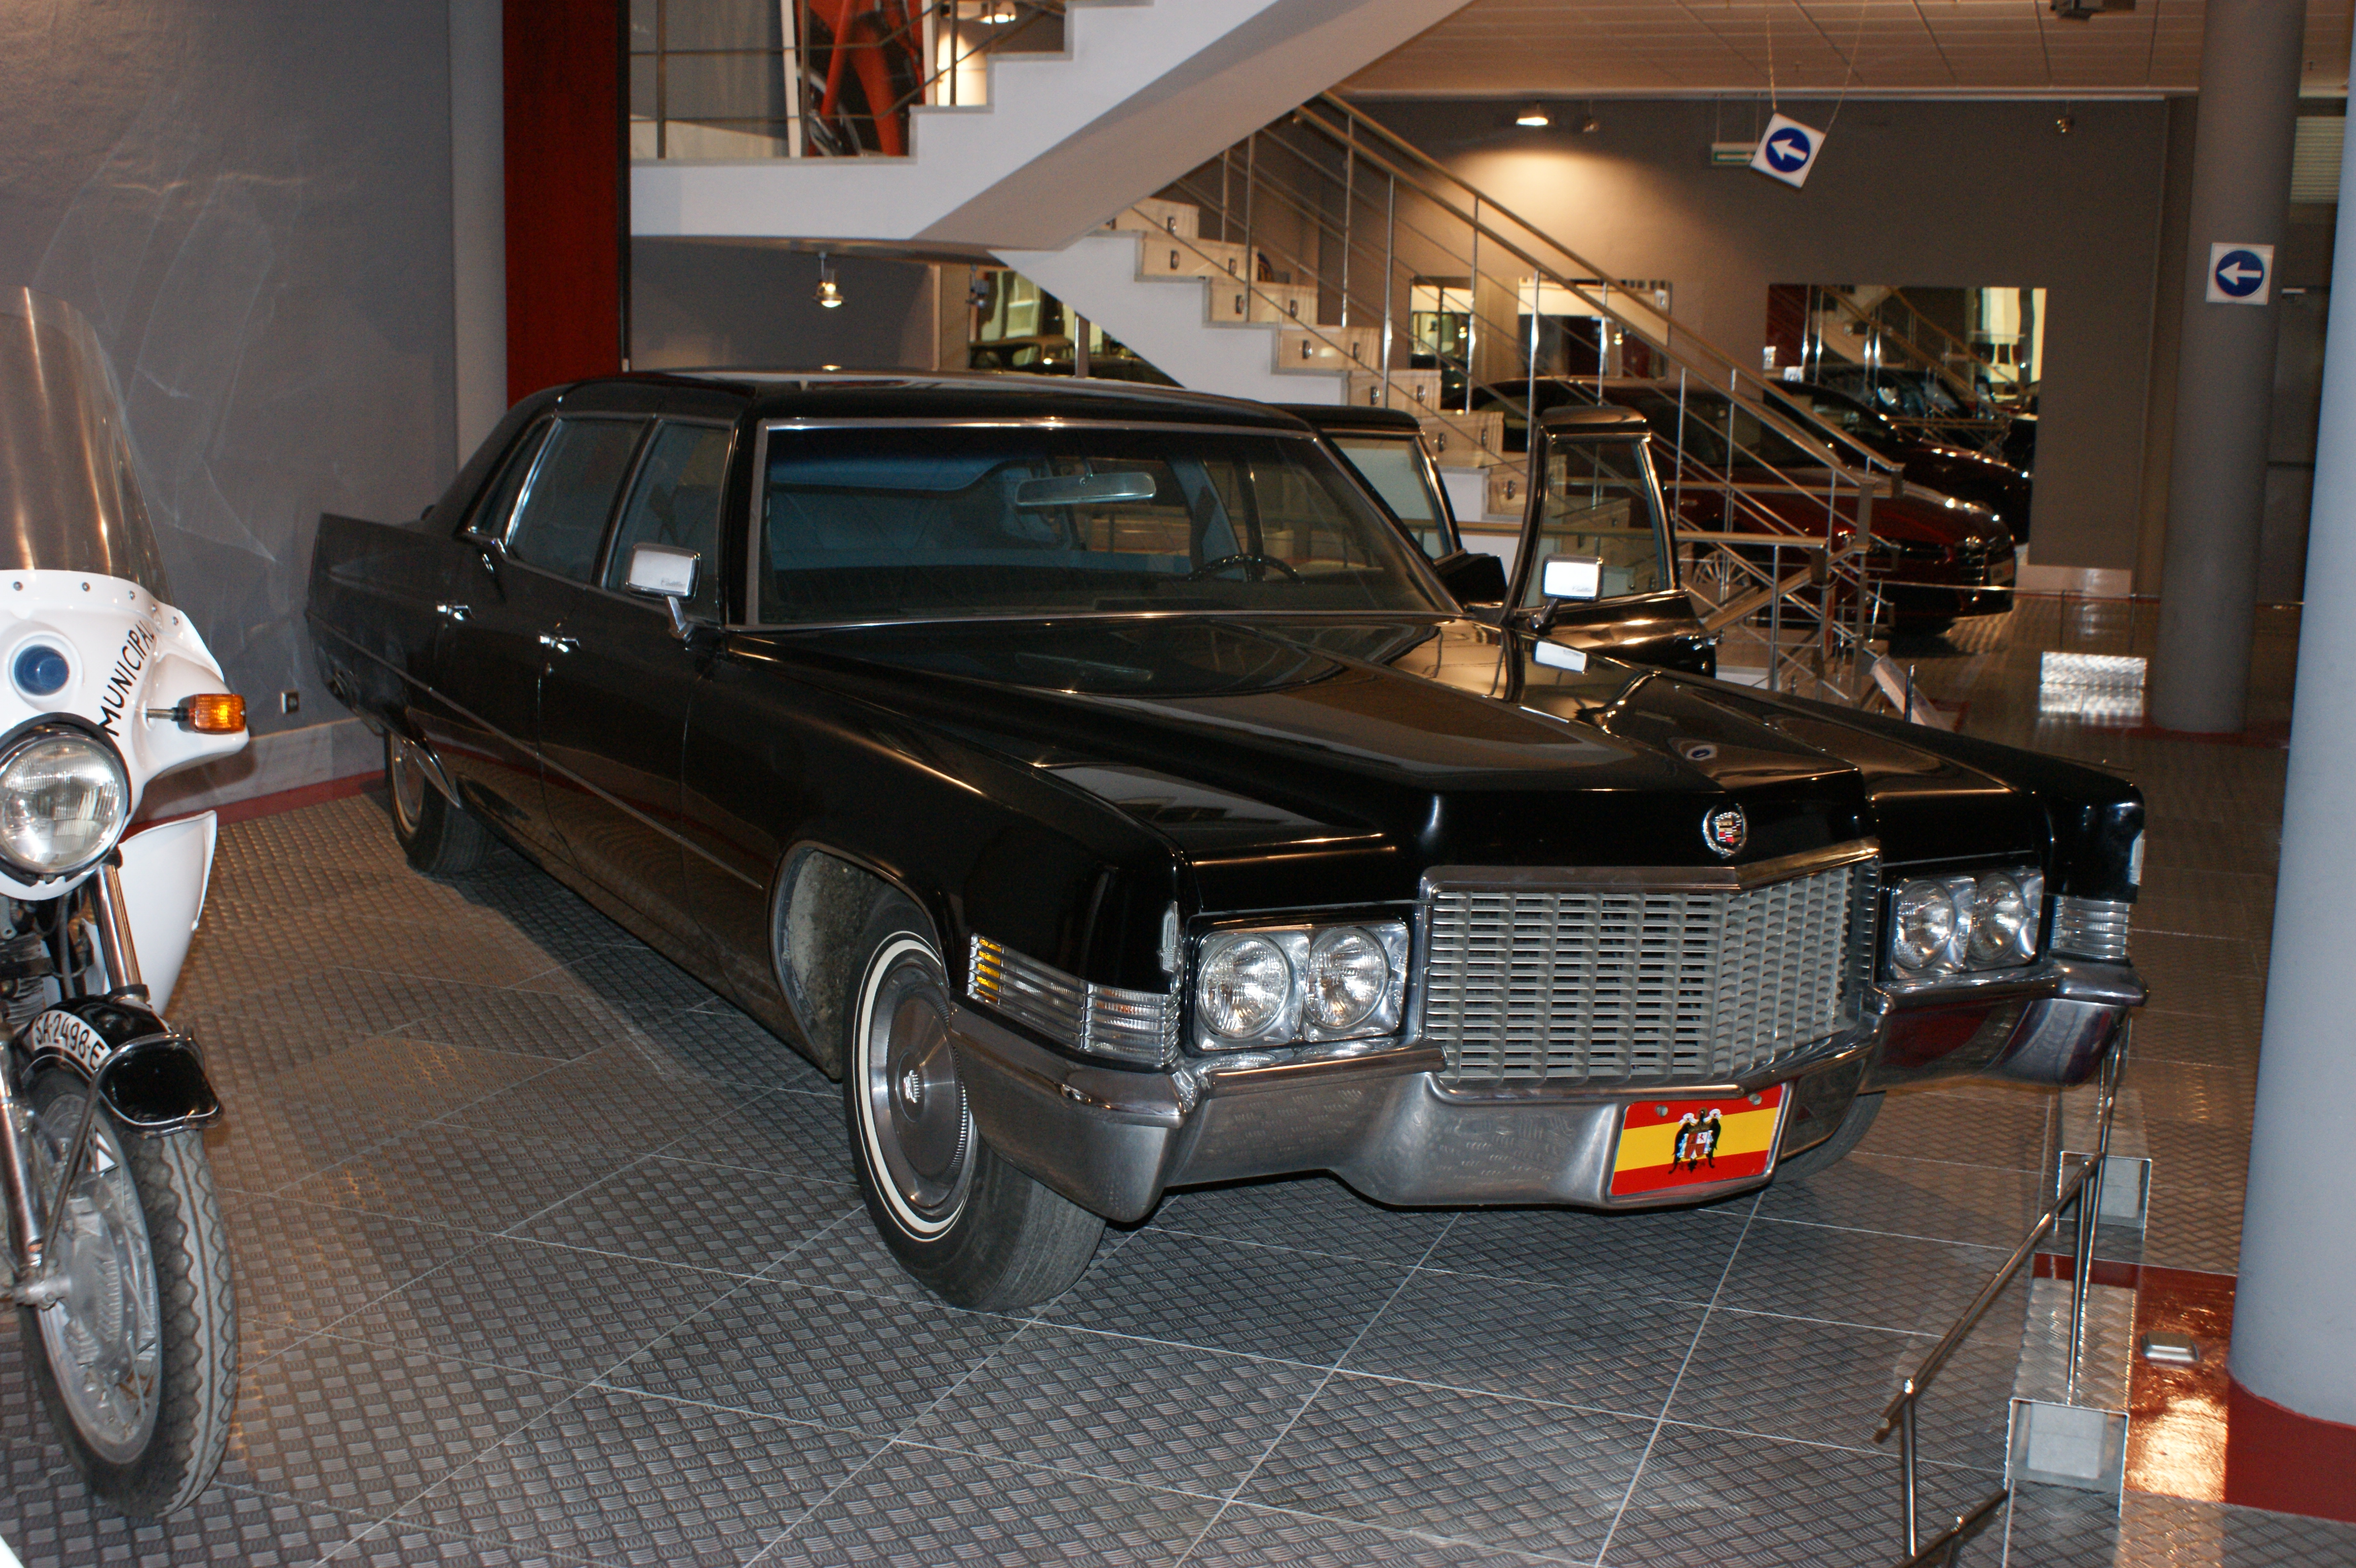 cadillac side a has of kansas city car every sale fleetwood tell for club yours left to story